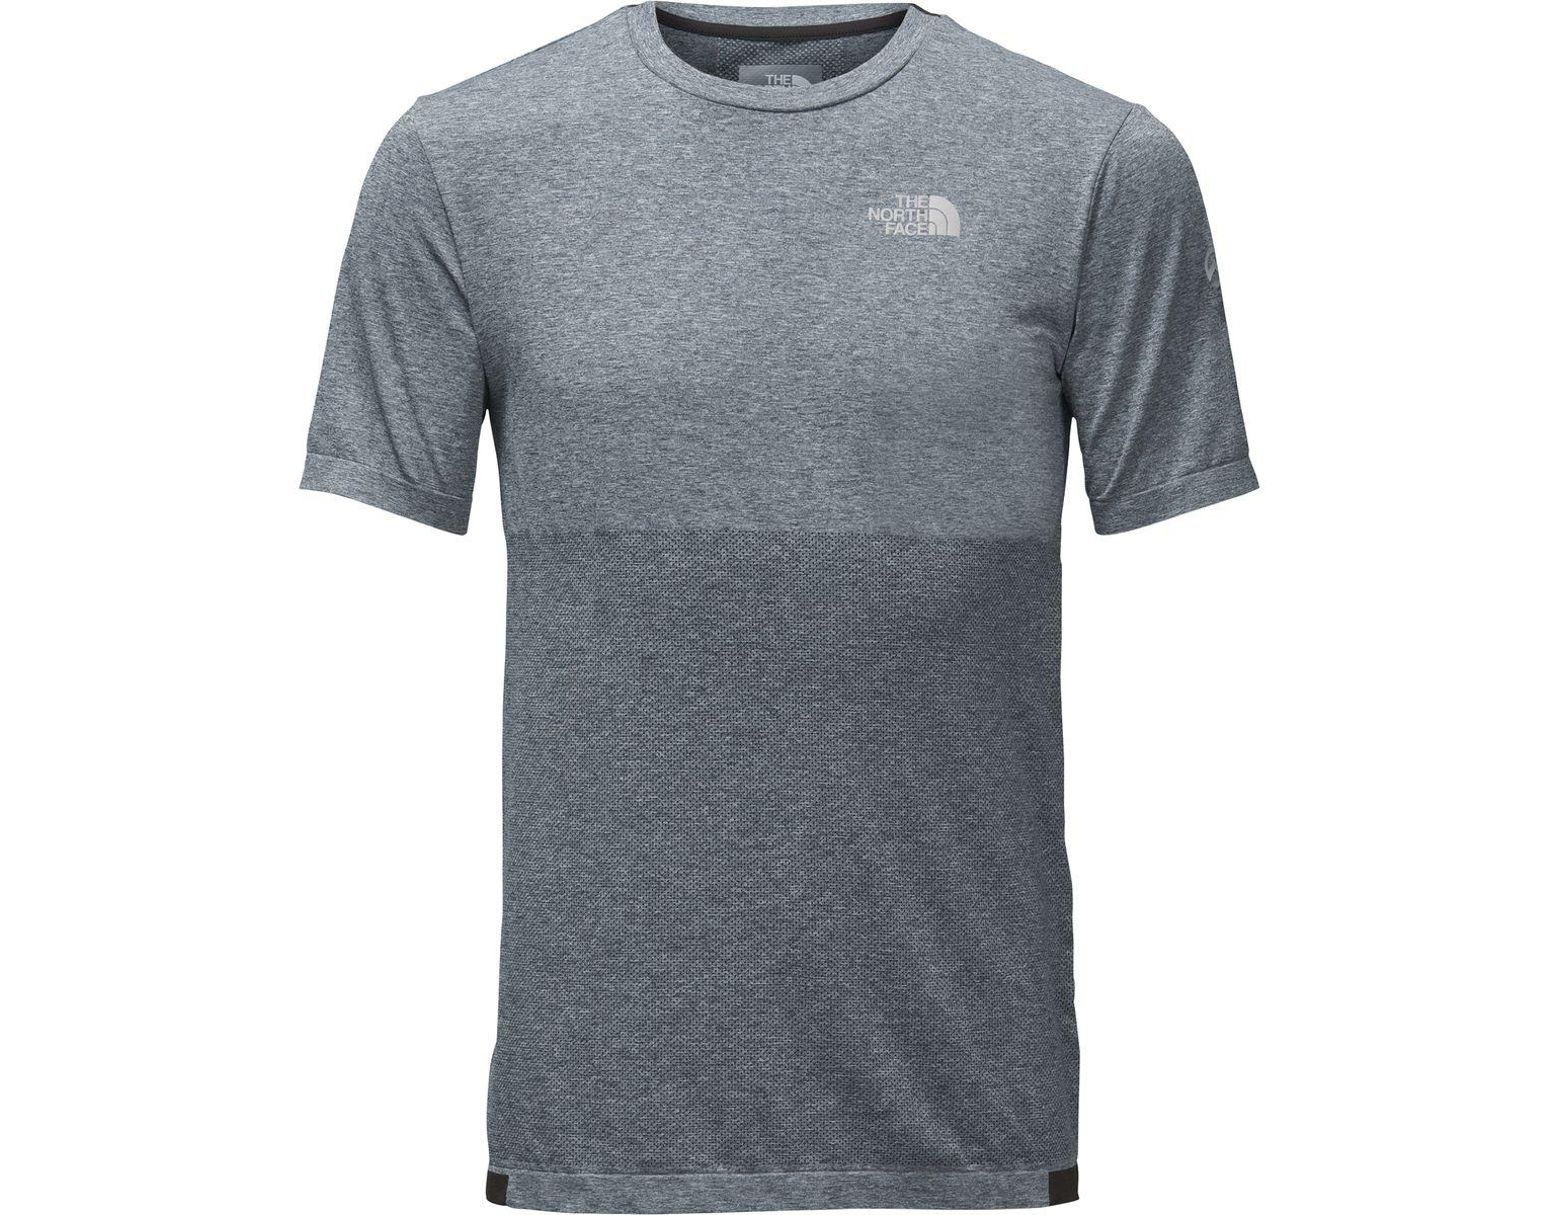 9035d1a2 The North Face Summit L1 Engineered Short-sleeve Top in Gray for Men - Lyst